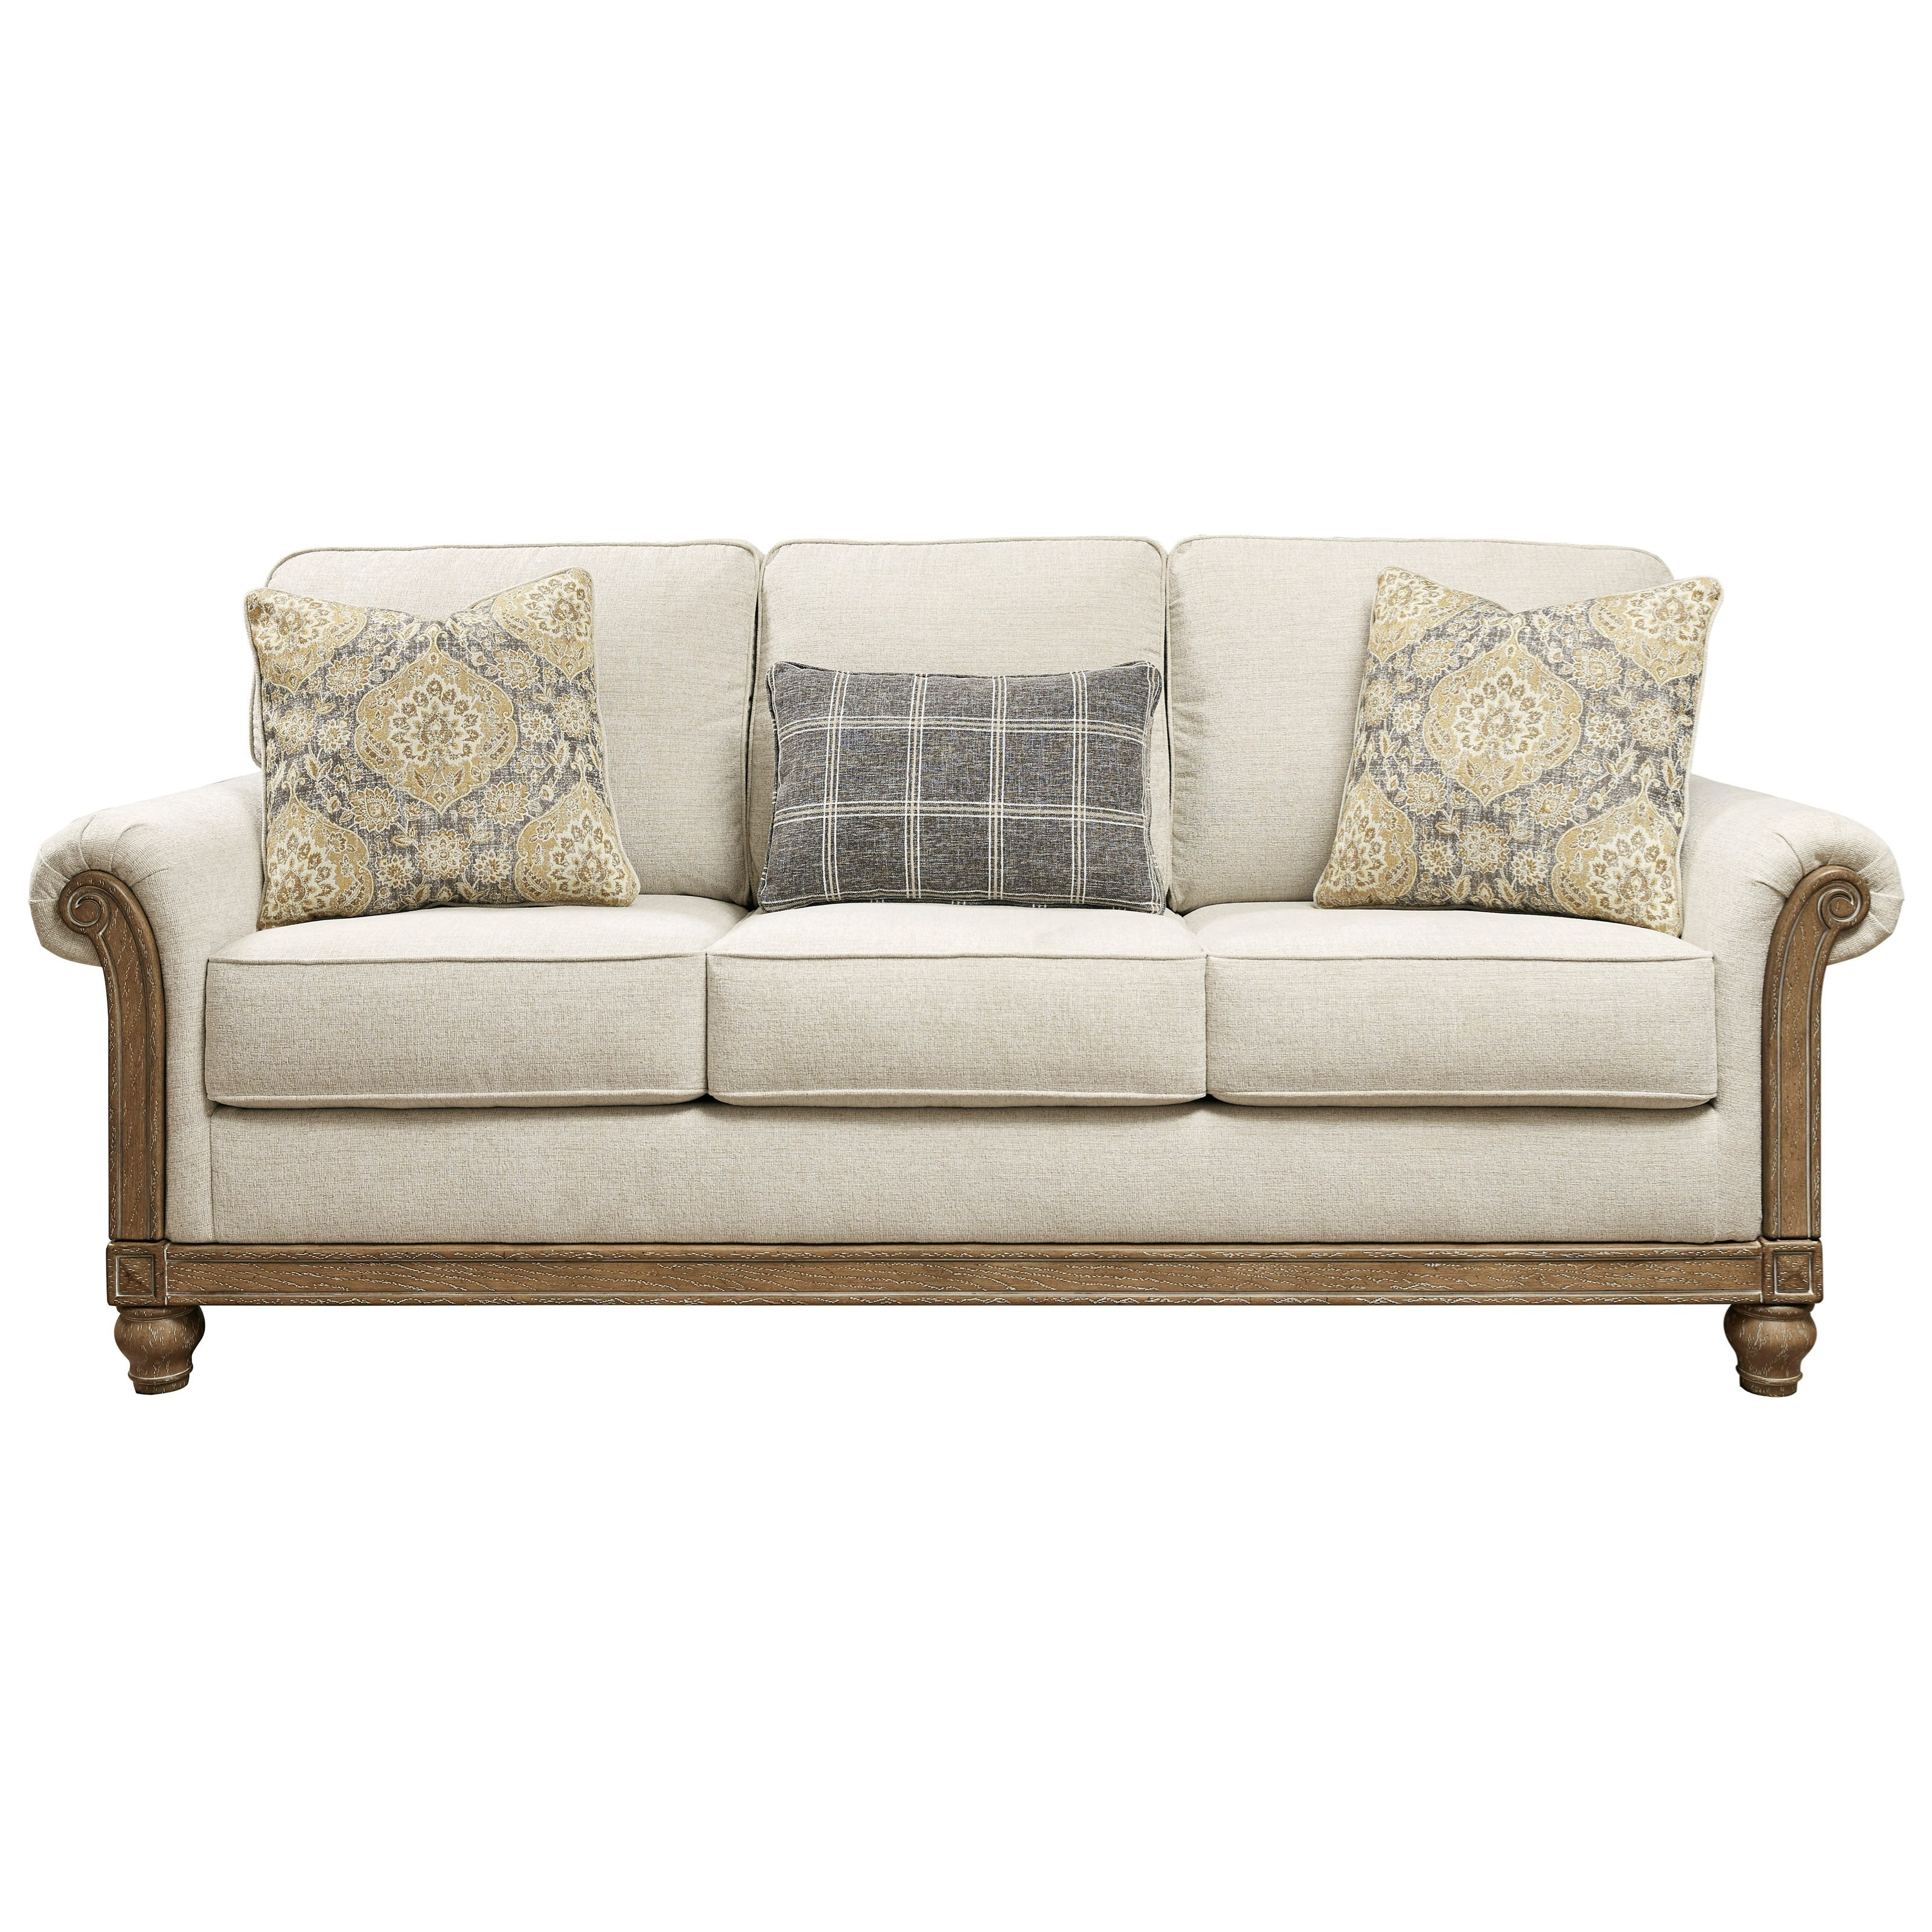 Stoneleigh  Sofa by Benchcraft at Zak's Warehouse Clearance Center